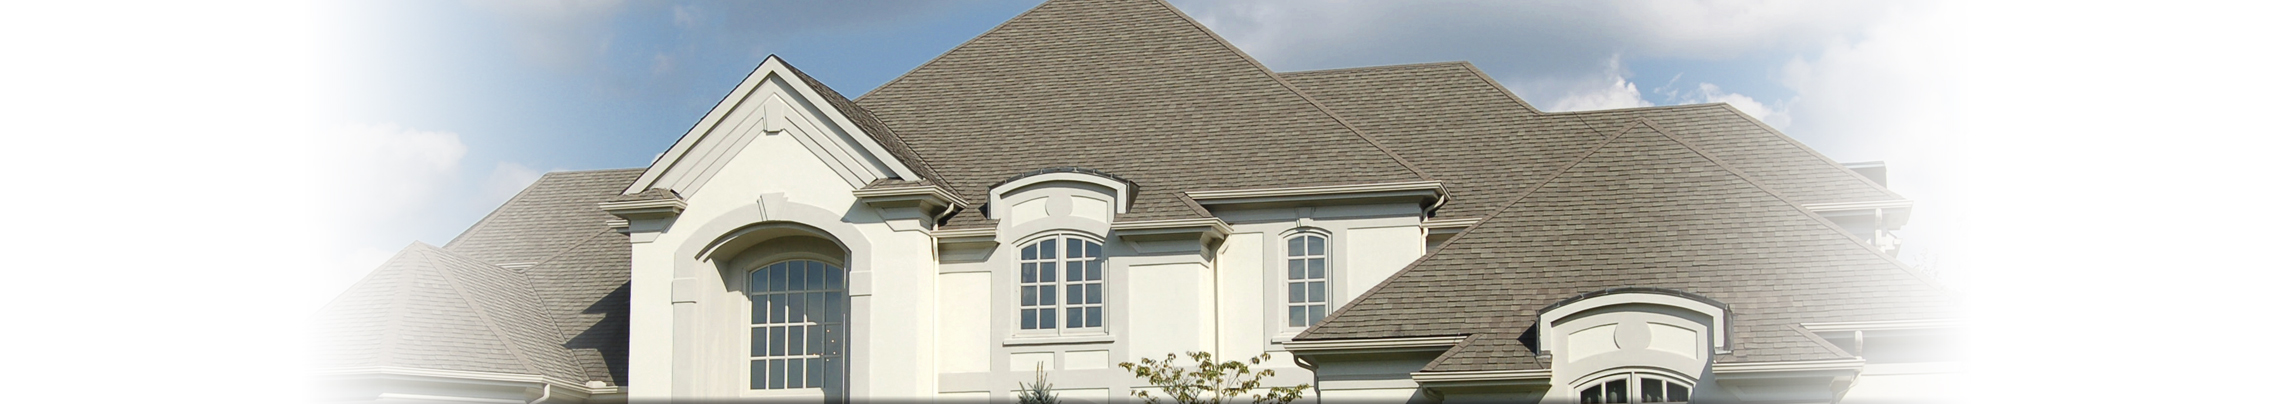 Dunbar Roofing Amp Siding Co Roofing Services Roof